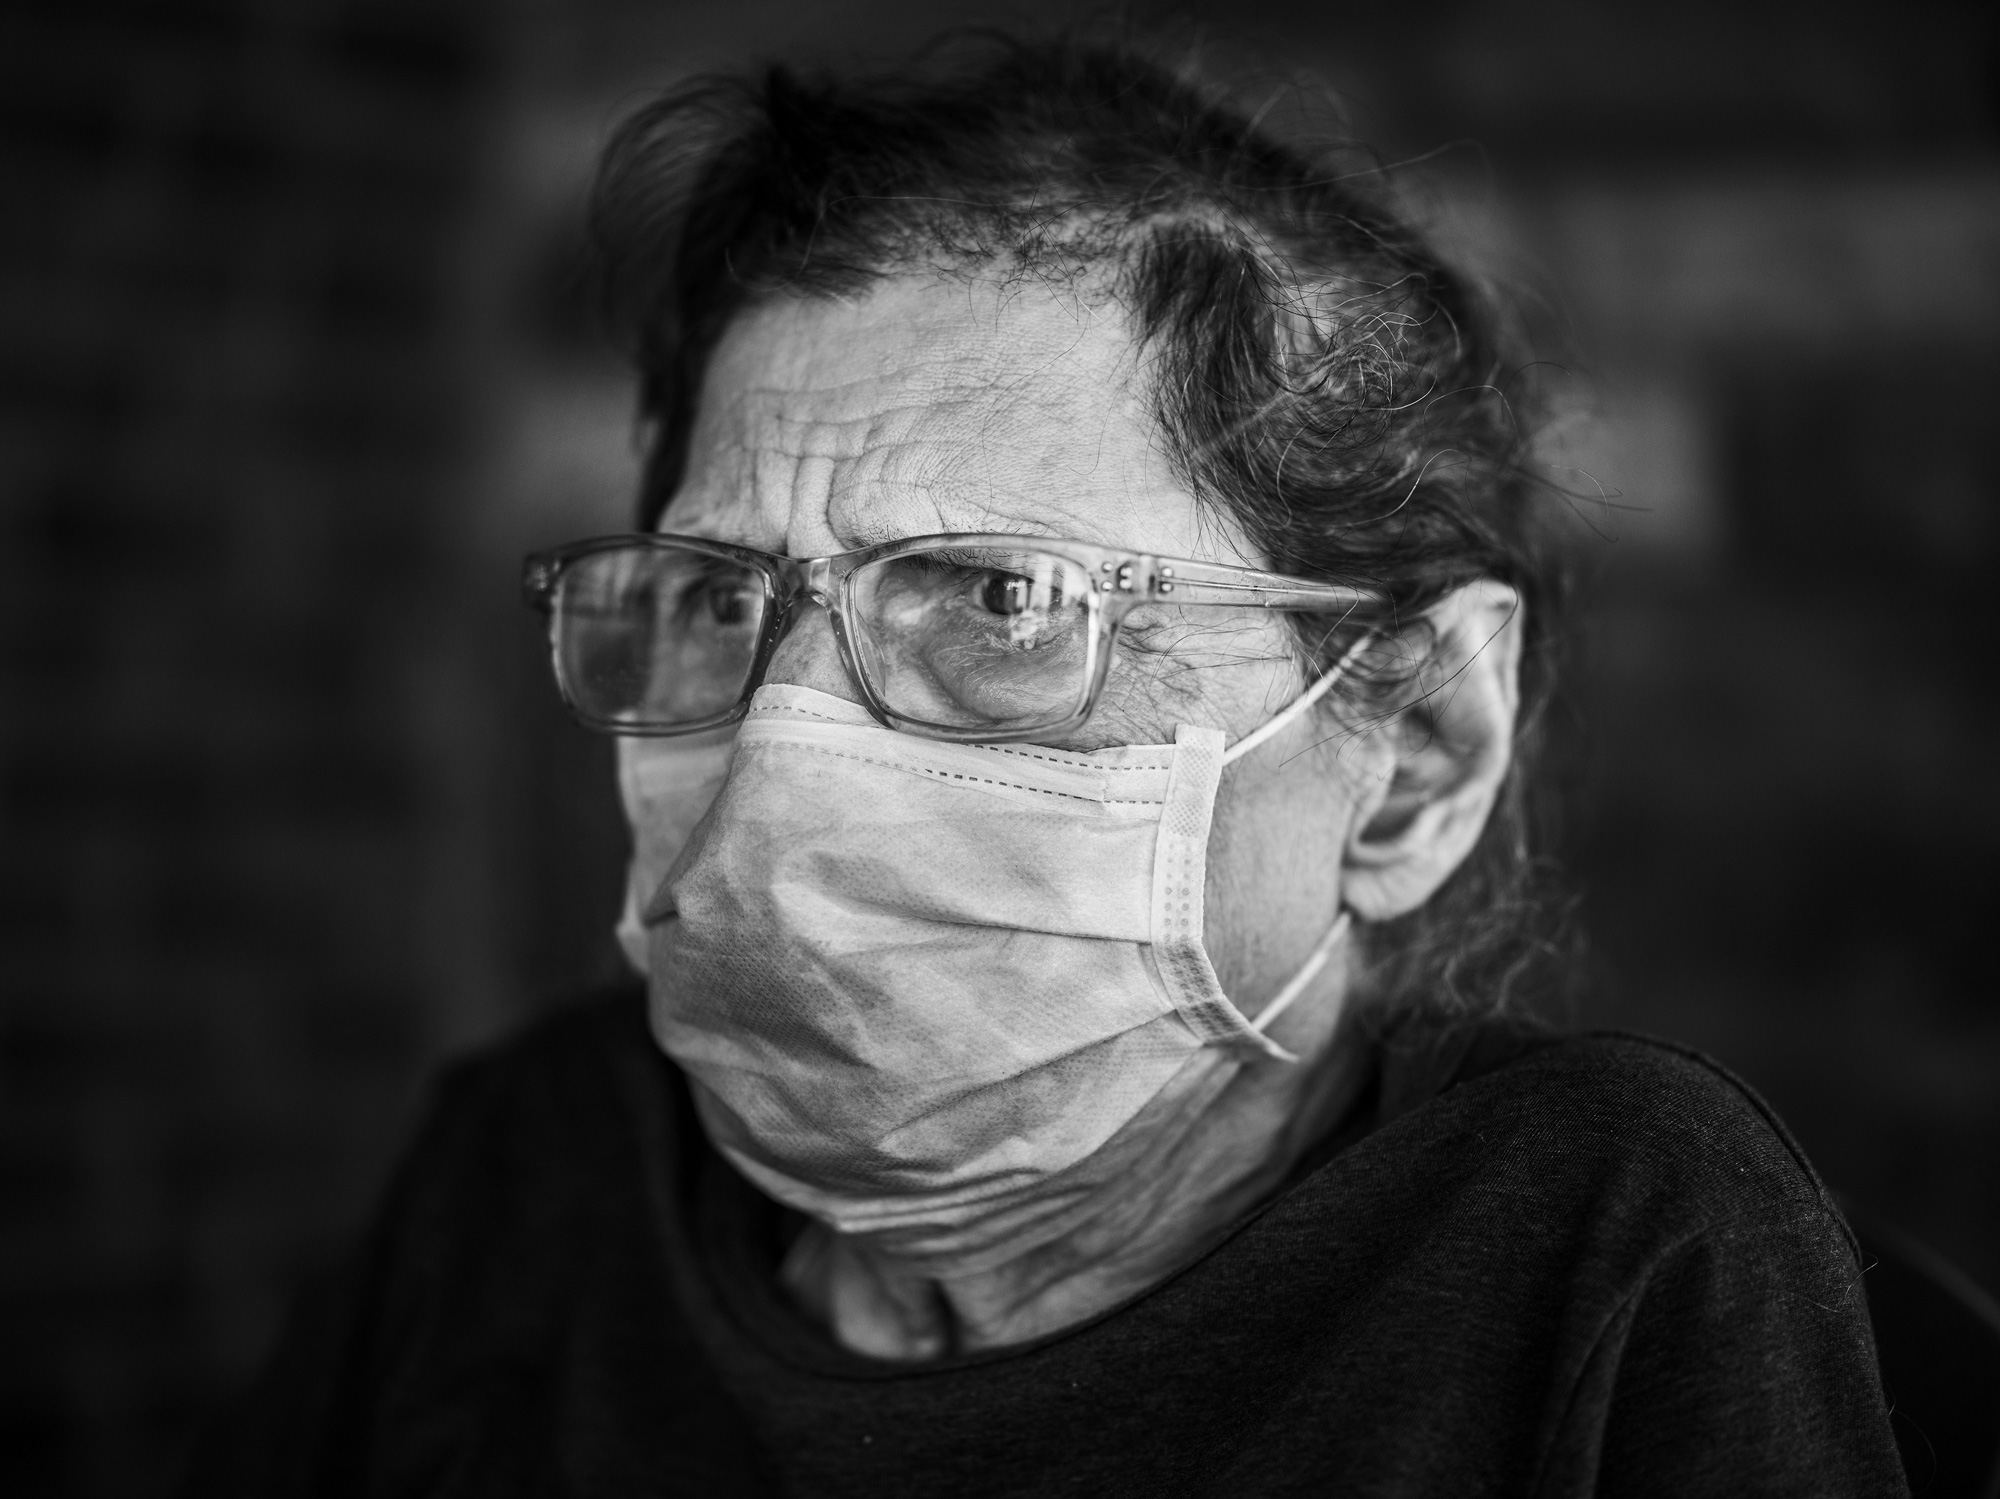 Former North Ridge patient Florence Van Mersbergen has nightmares of gasping for breath and crying out for help as people ignore her pleas.